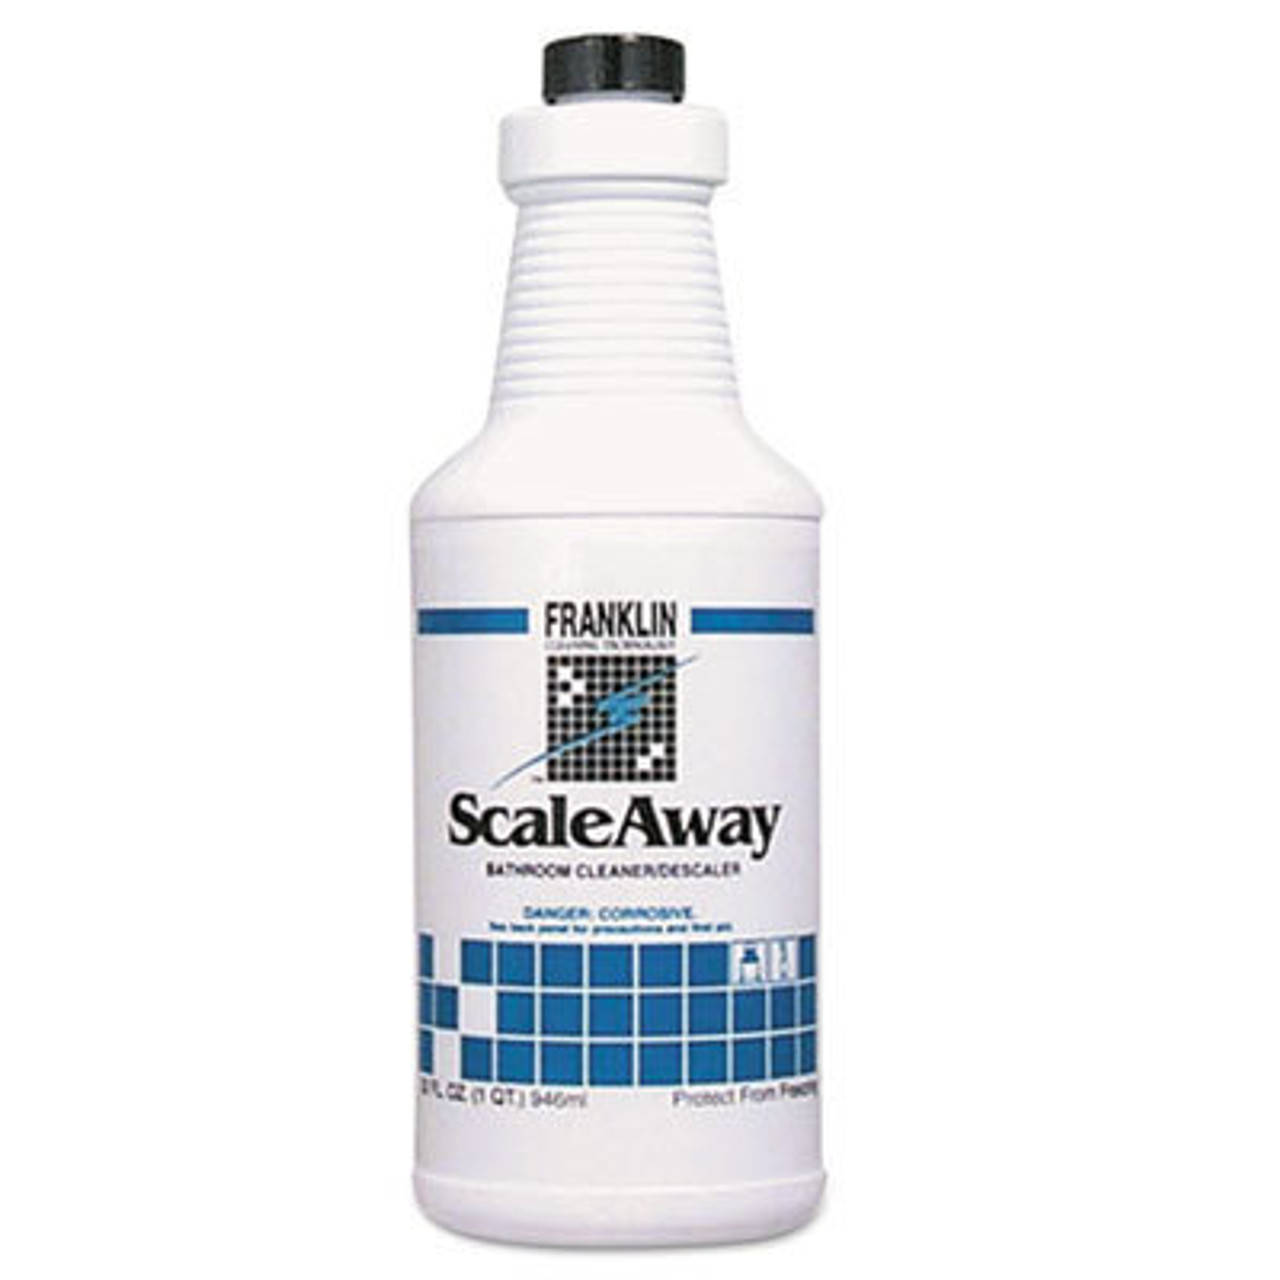 your bathrooms have to be clean and sanitary at all times we carry the best drain cleaner toilet bowl cleaner and grout cleaner to keep your bathrooms